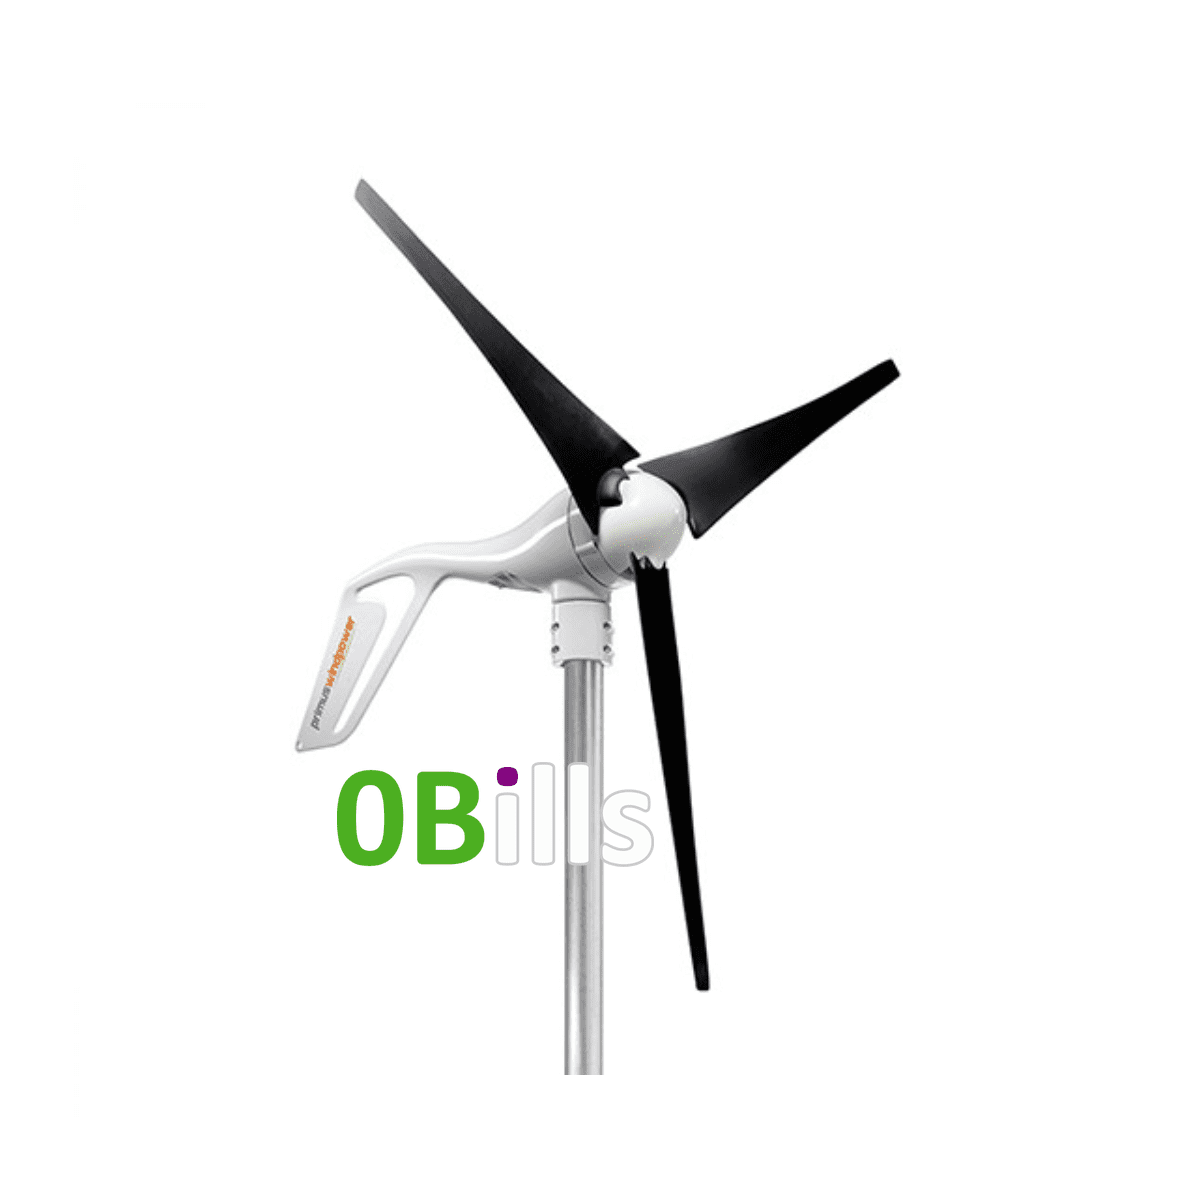 Primus Wind Generator AIR X Marine 160W 48V Wind Turbine